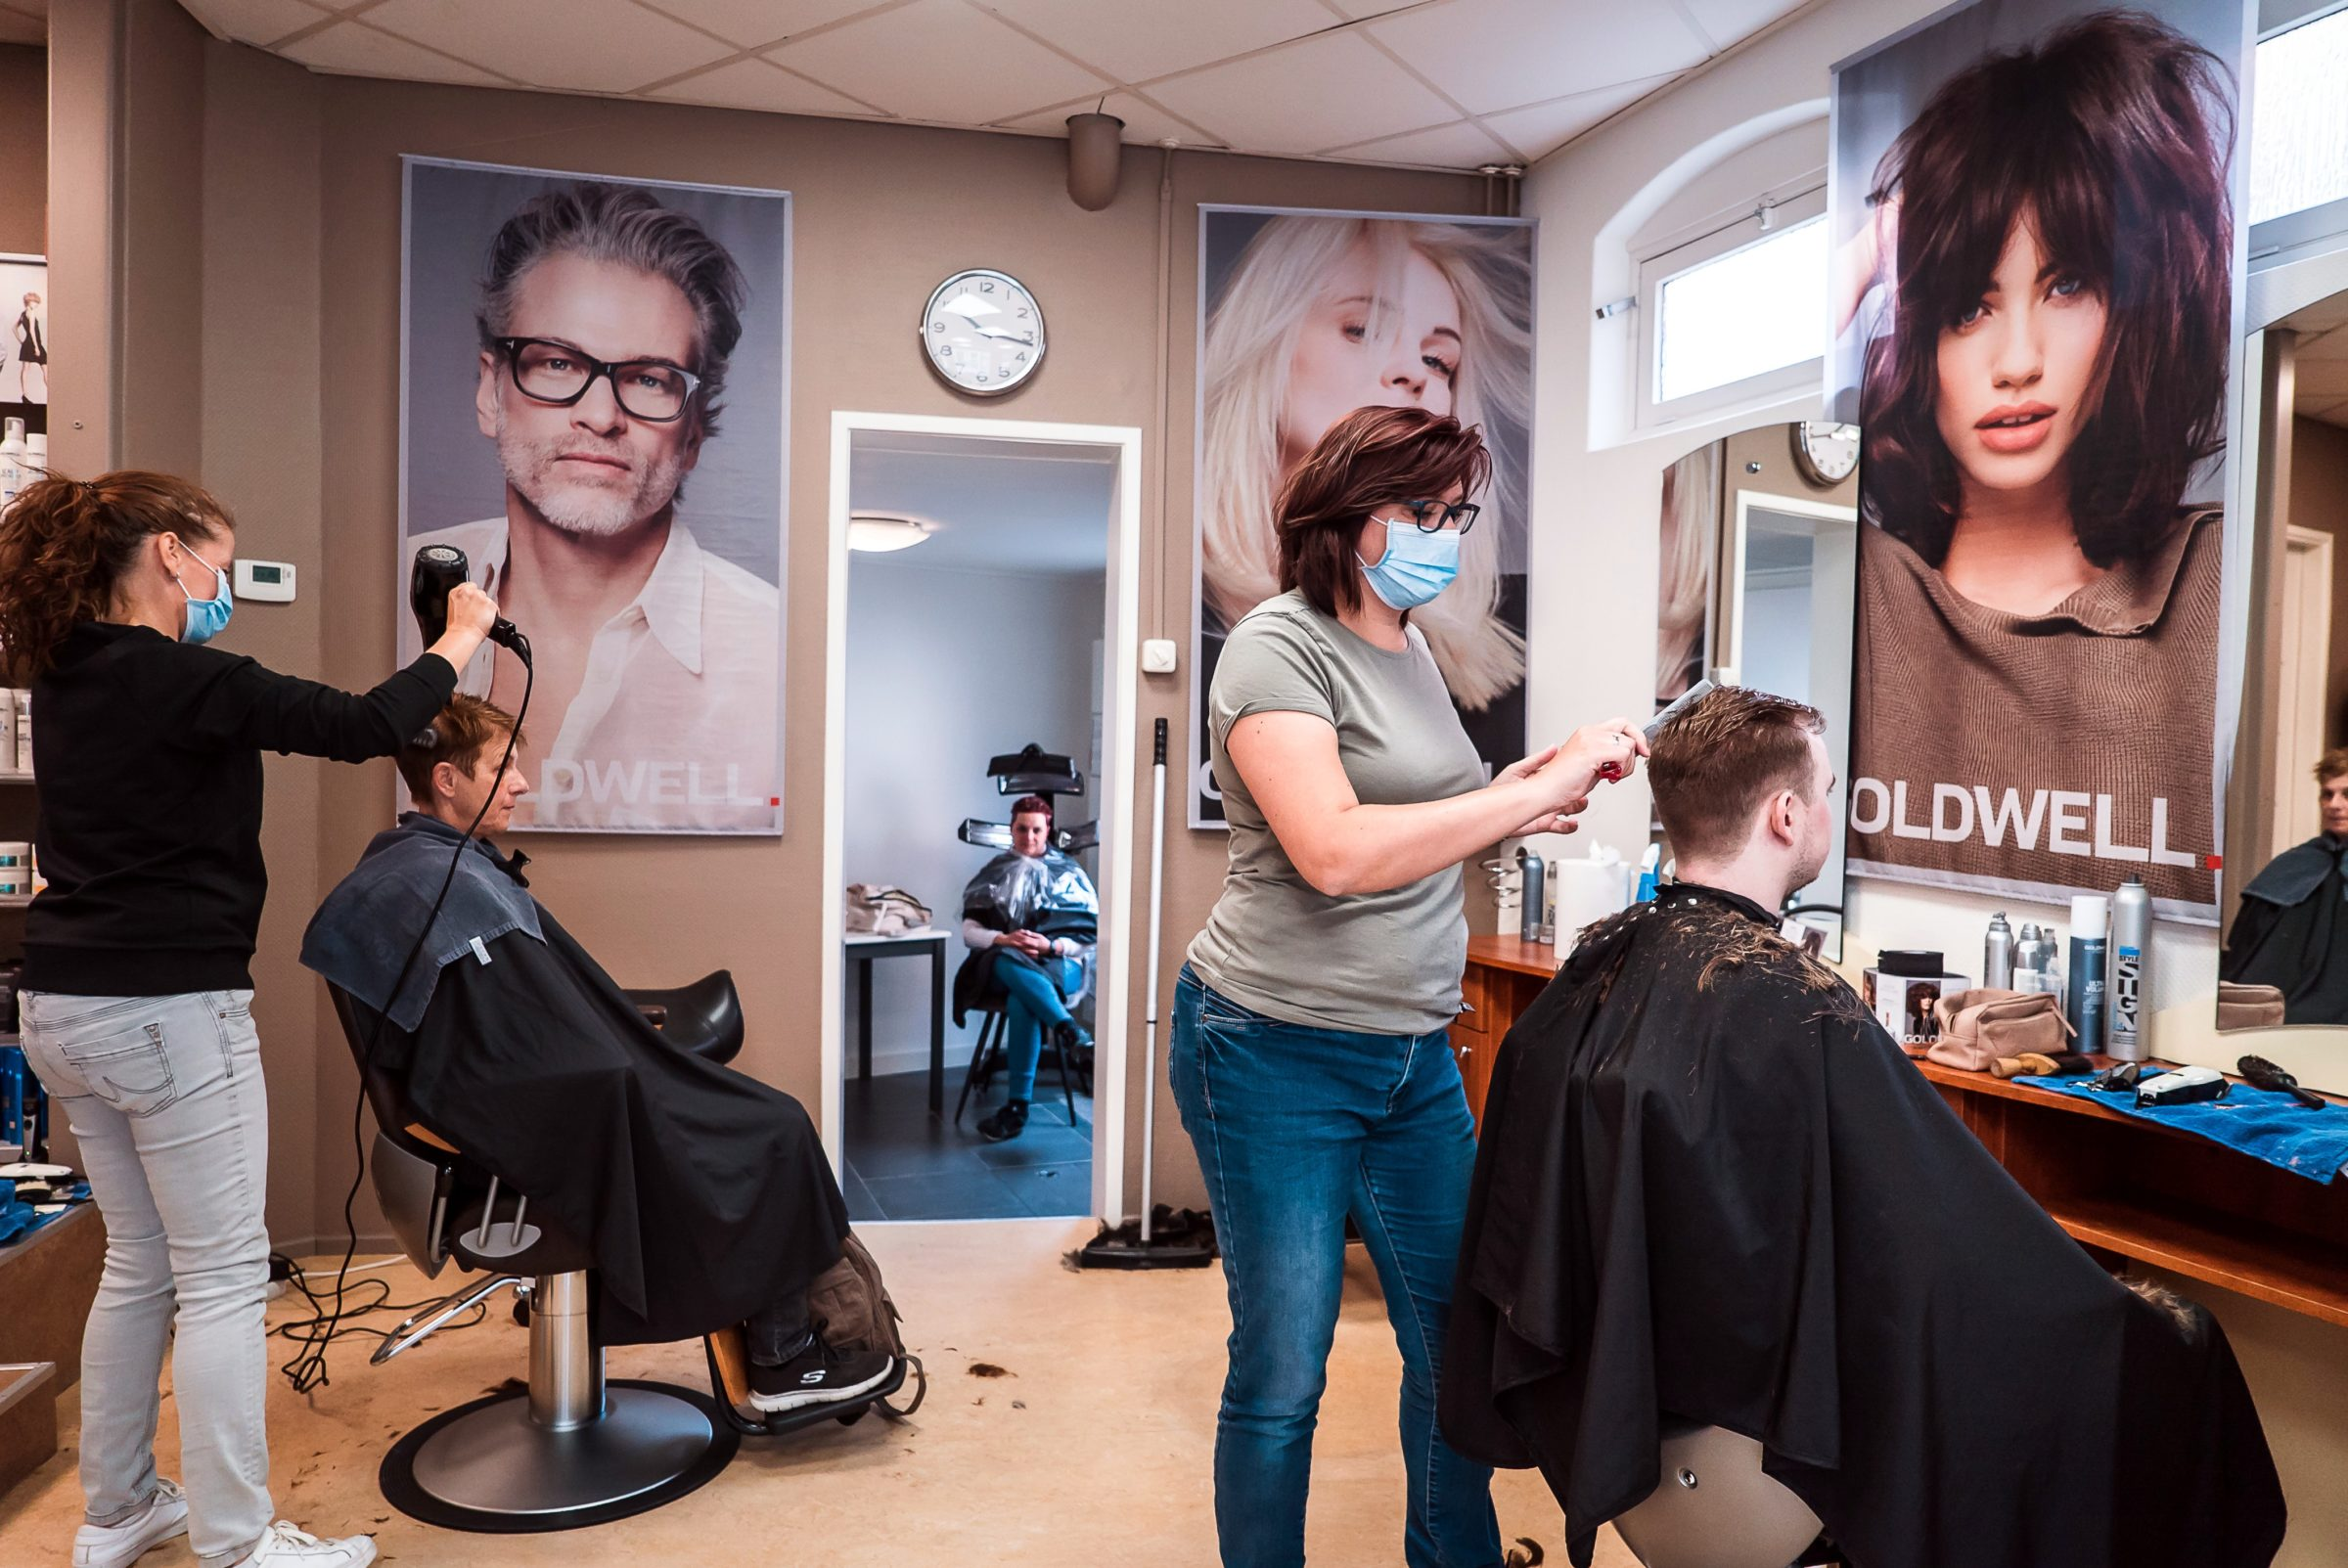 hairdressers open earlier than expected